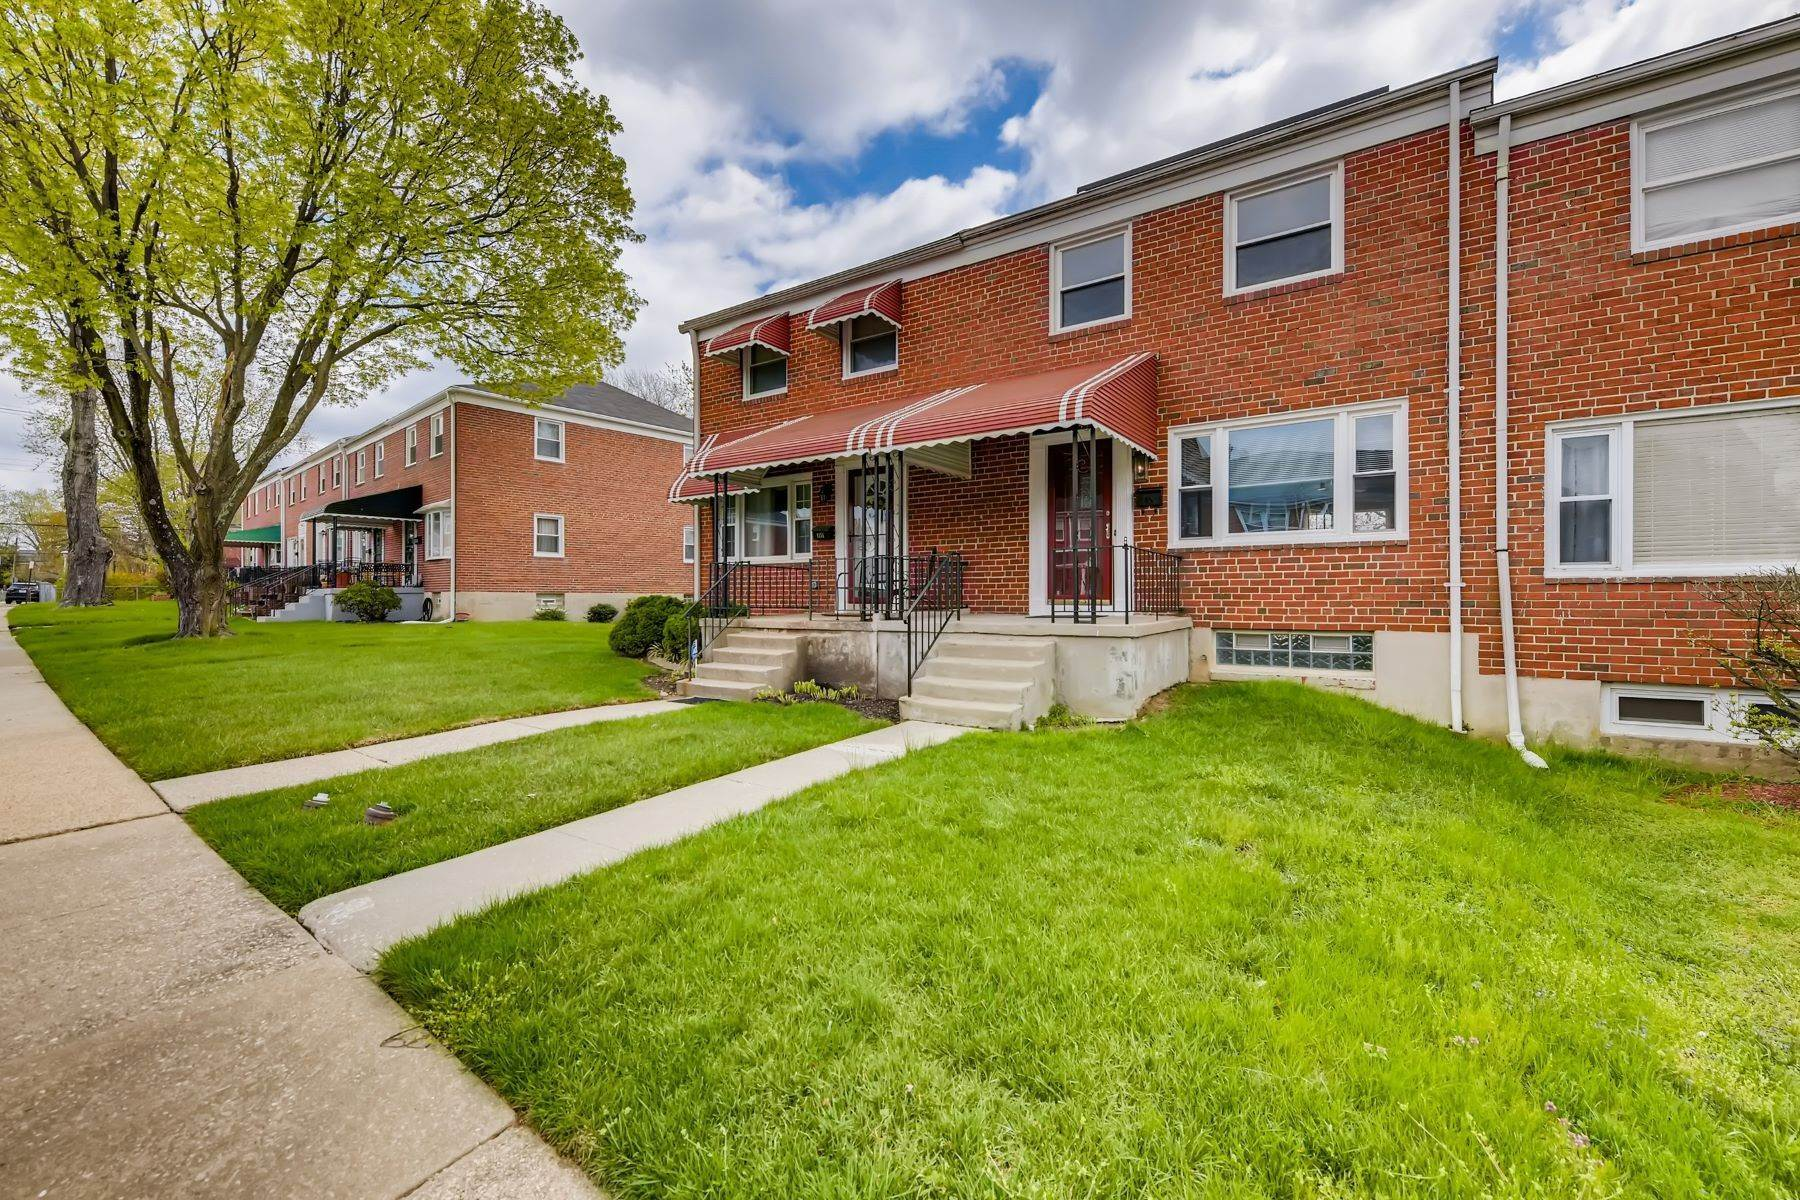 townhouses for Sale at Glen Oaks Townhome 1149 Sherwood Avenue Baltimore, Maryland 21239 United States